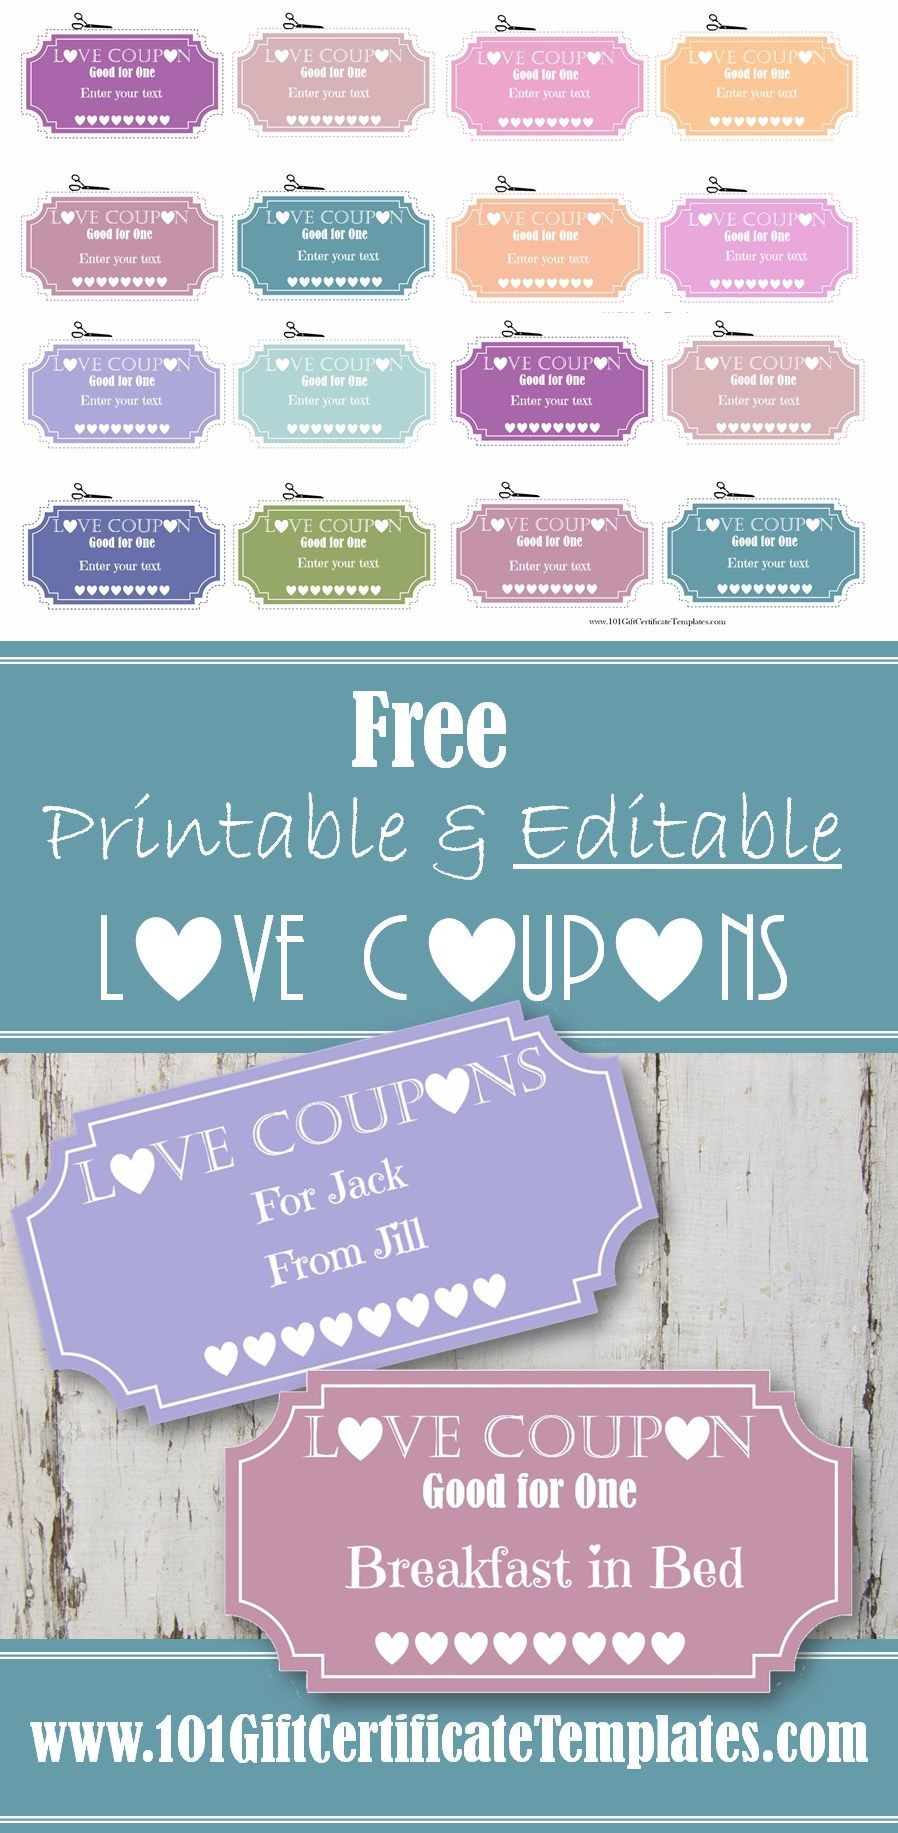 Free Printable Love Coupons That Can Be Personalized And Edited